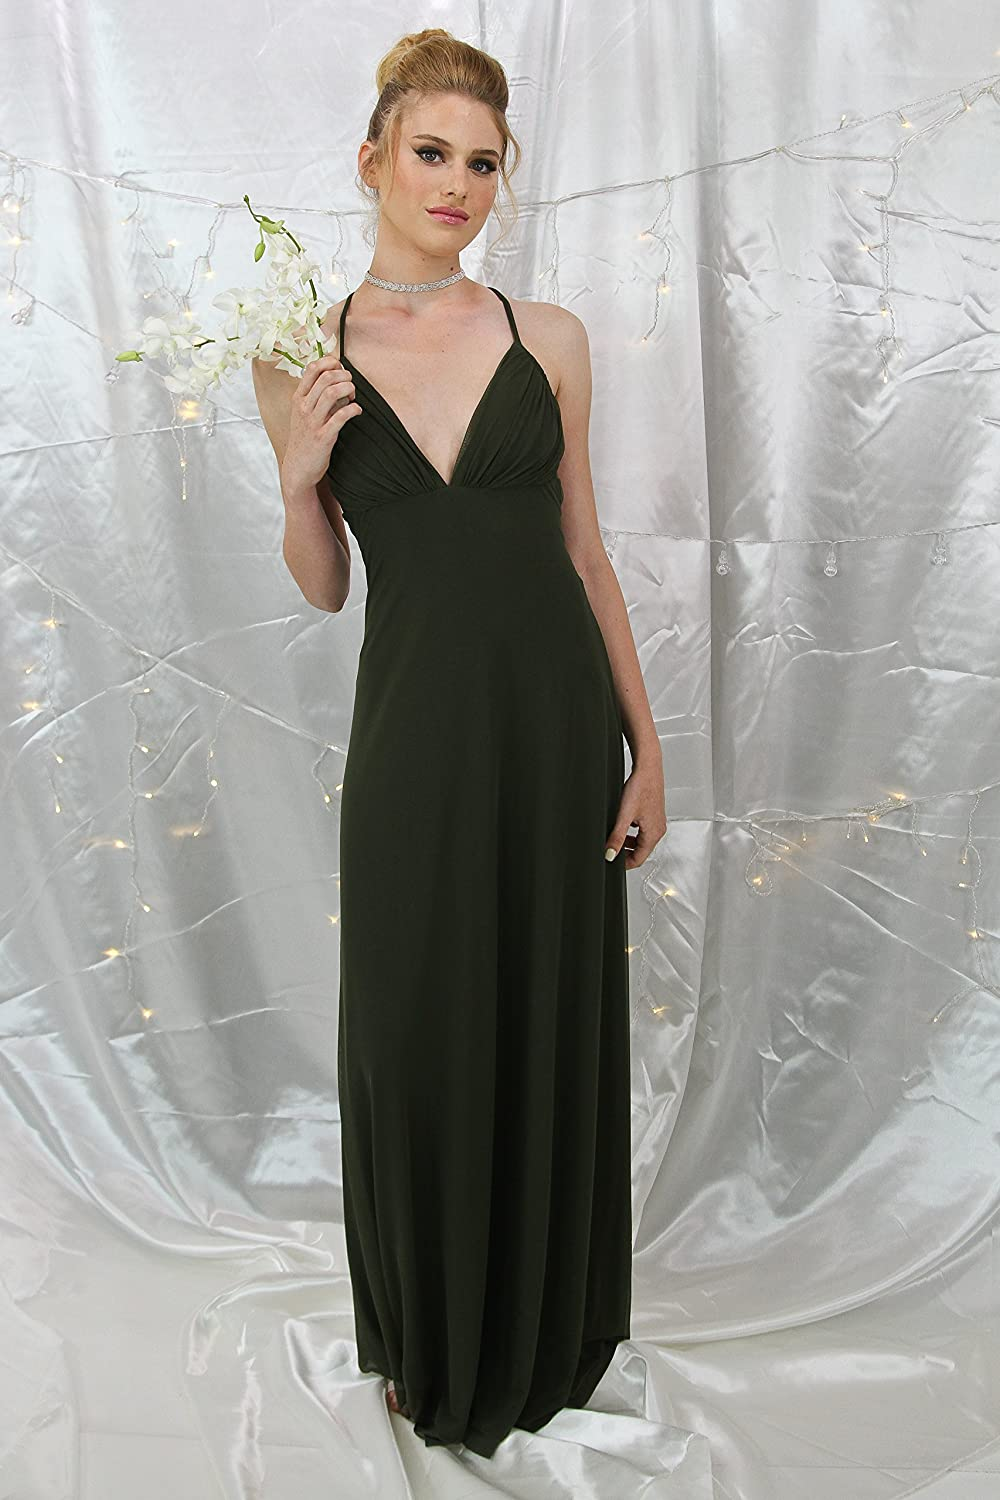 a1dc276bd31 Amazon.com  Handmade Women s Olive Green Evening Dress